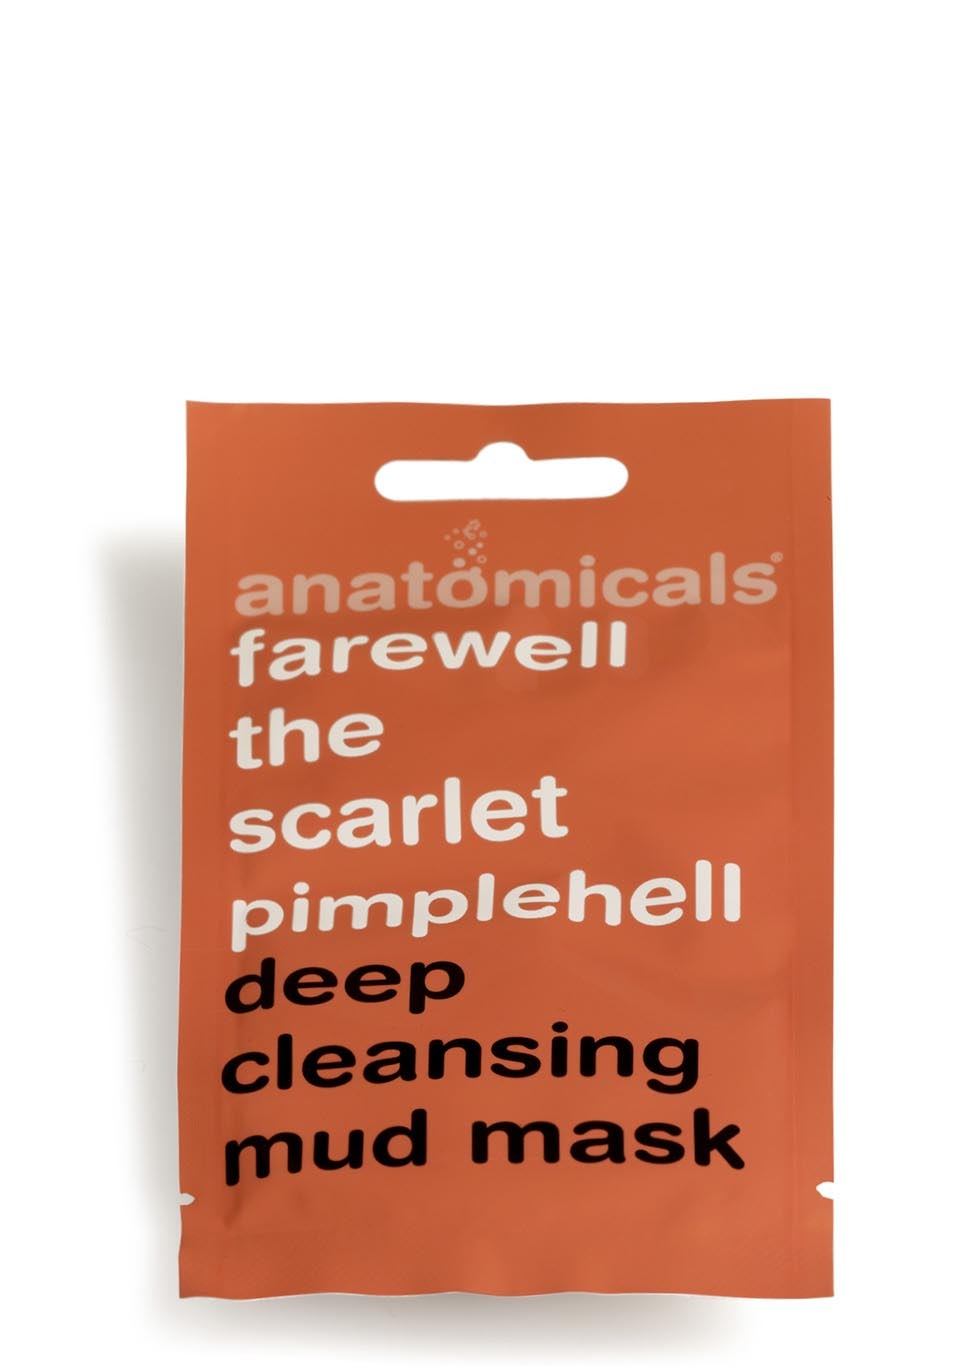 Farewell The Scarlet Pimplehell Deep Cleansing Mud Mask